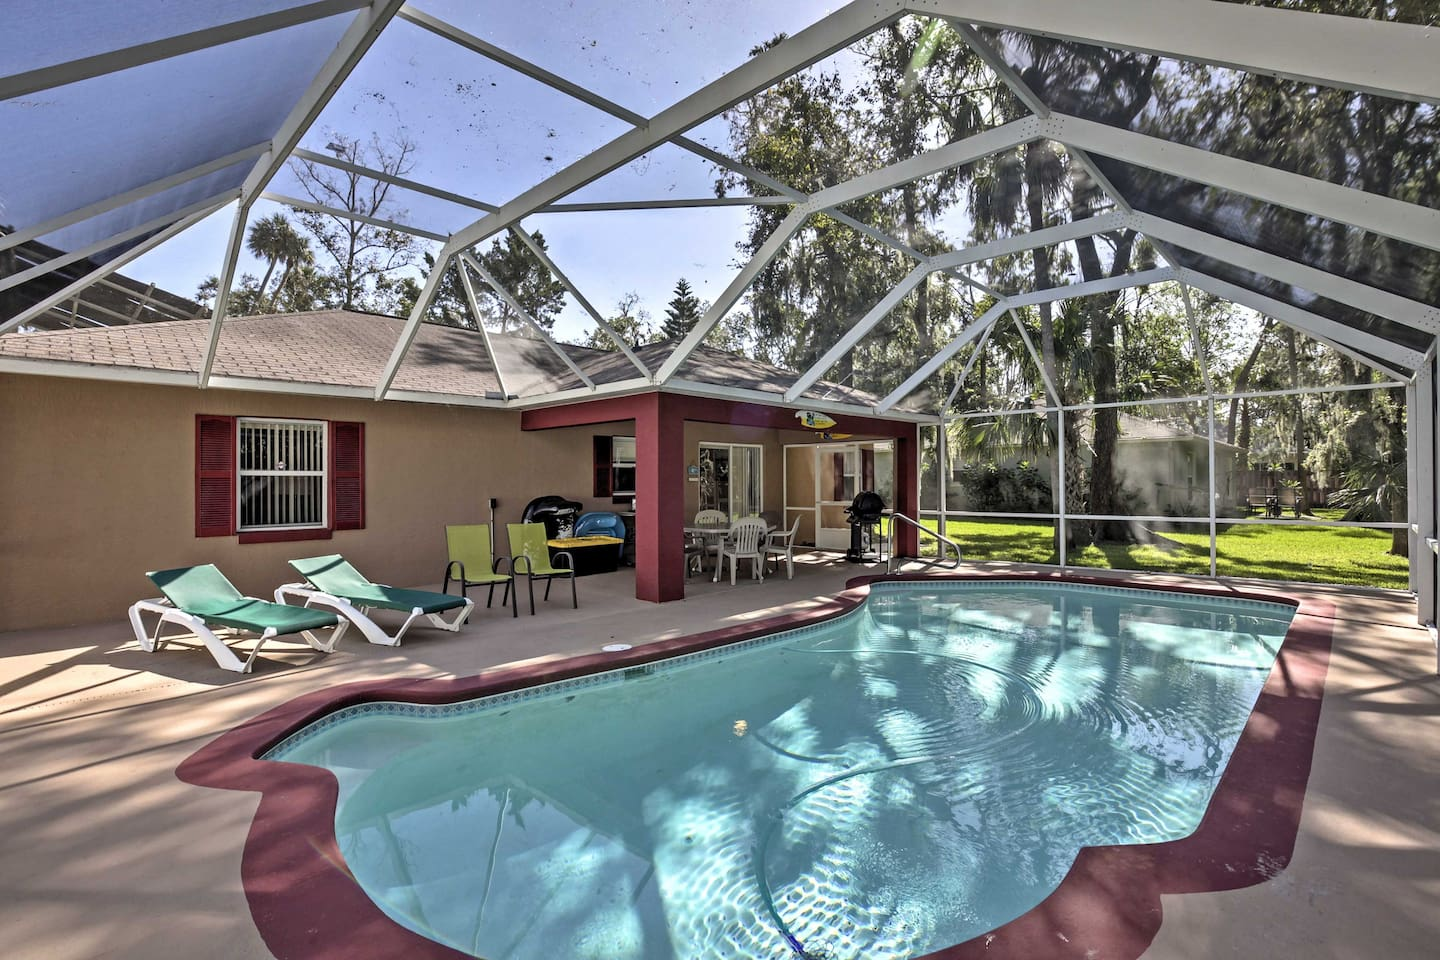 Escape to sunny Florida by booking this vacation rental house in Holly Hills!